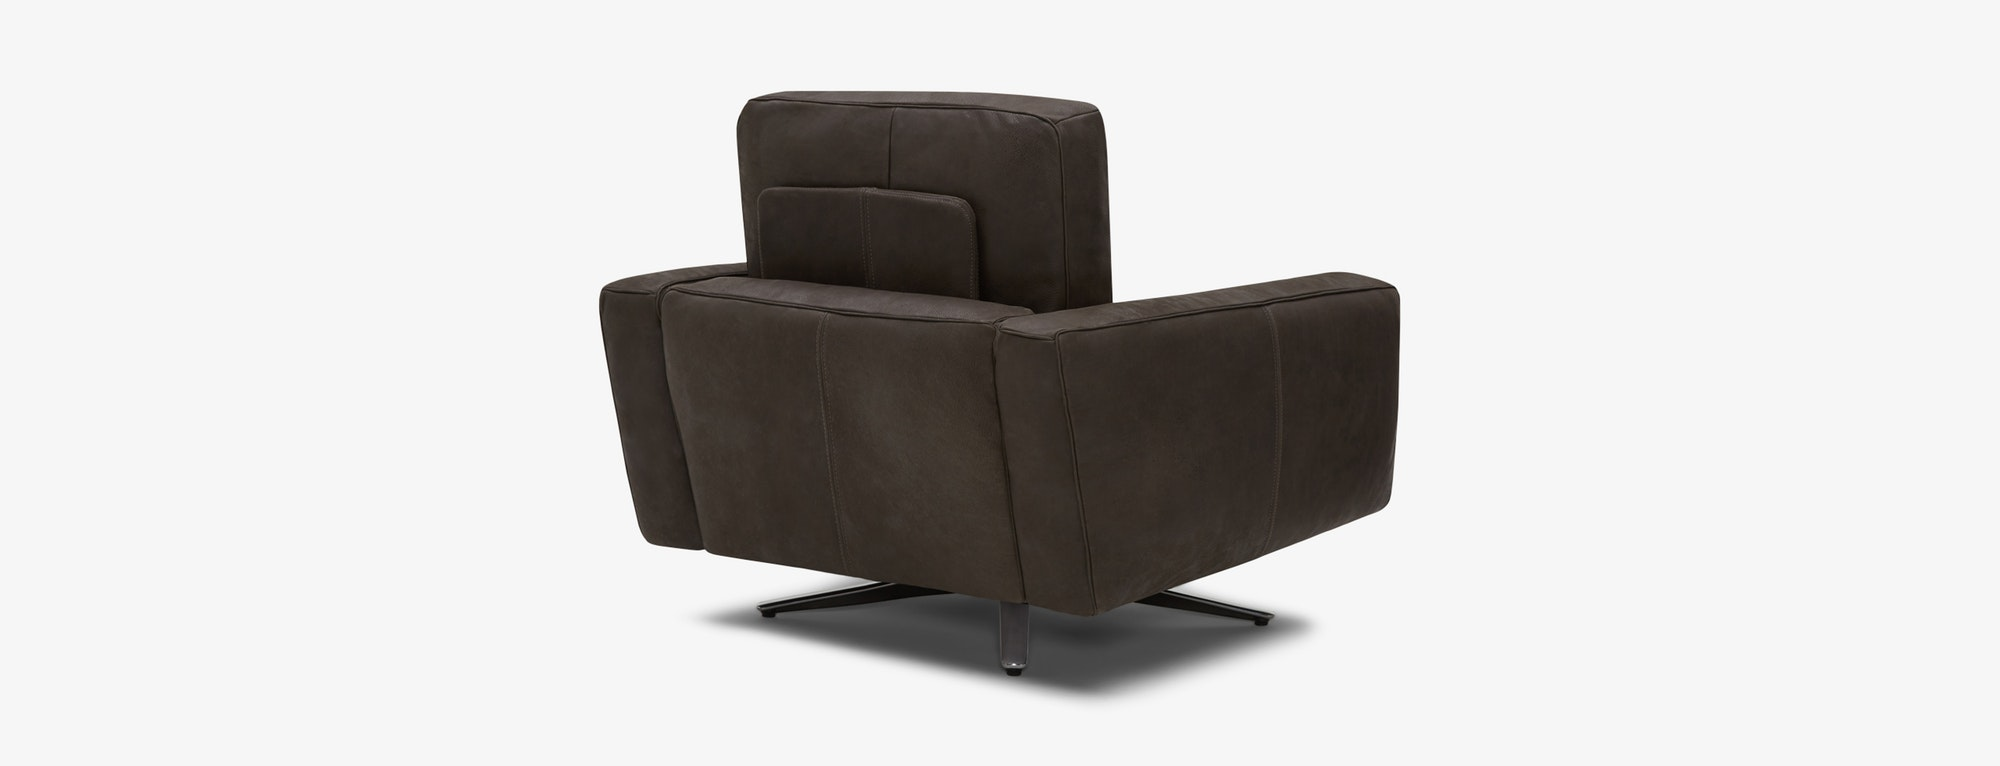 Nova-Leather-Swivel-Chair-Toledo-Graphite-T1-460